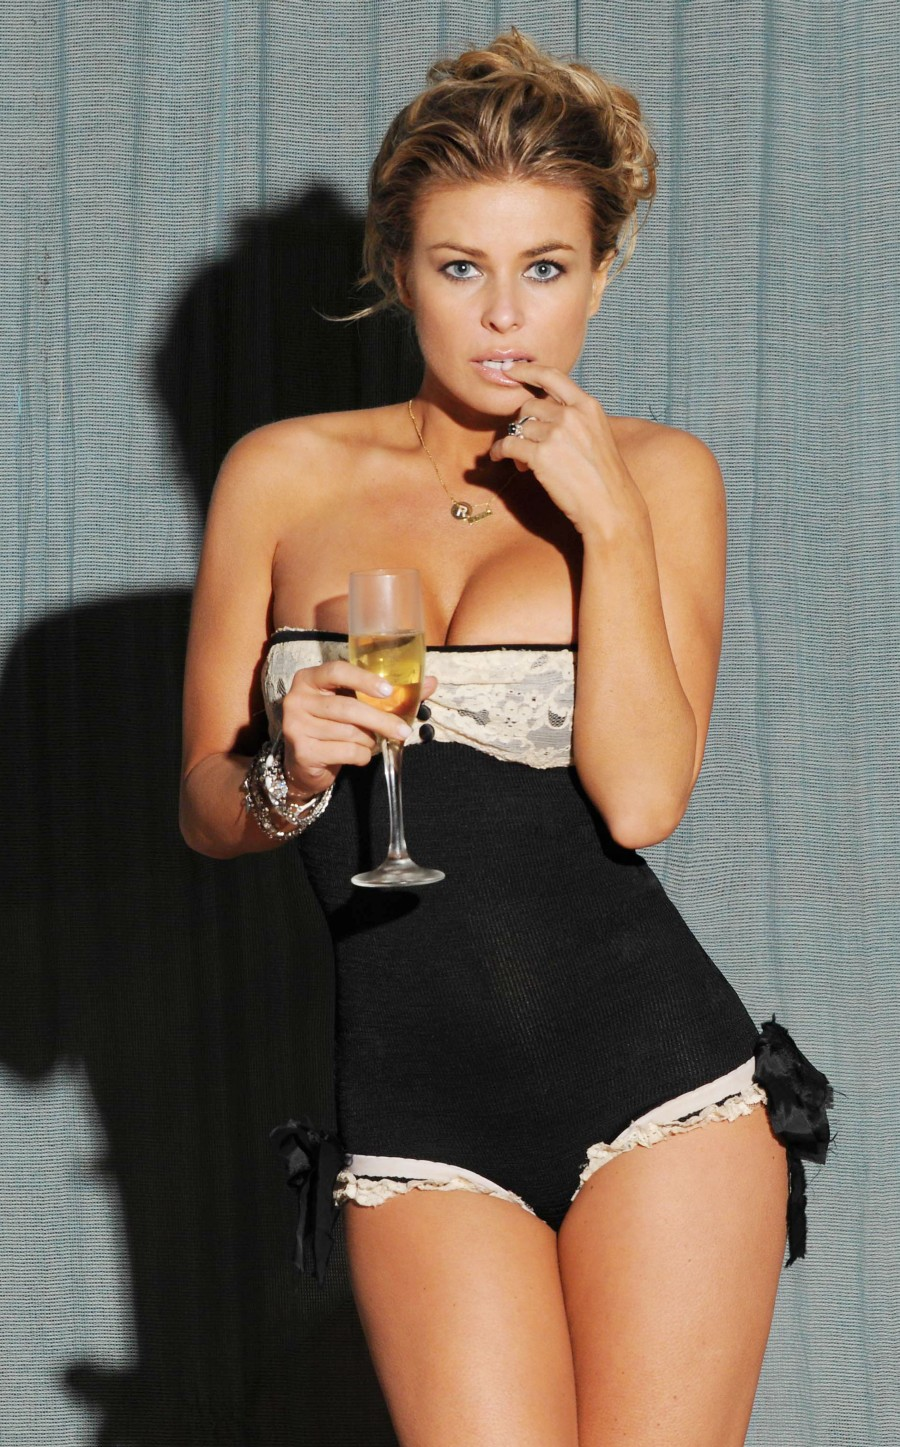 Carmen Electra Hot Photoshoot Pictures | Carmen Electra photo gallery